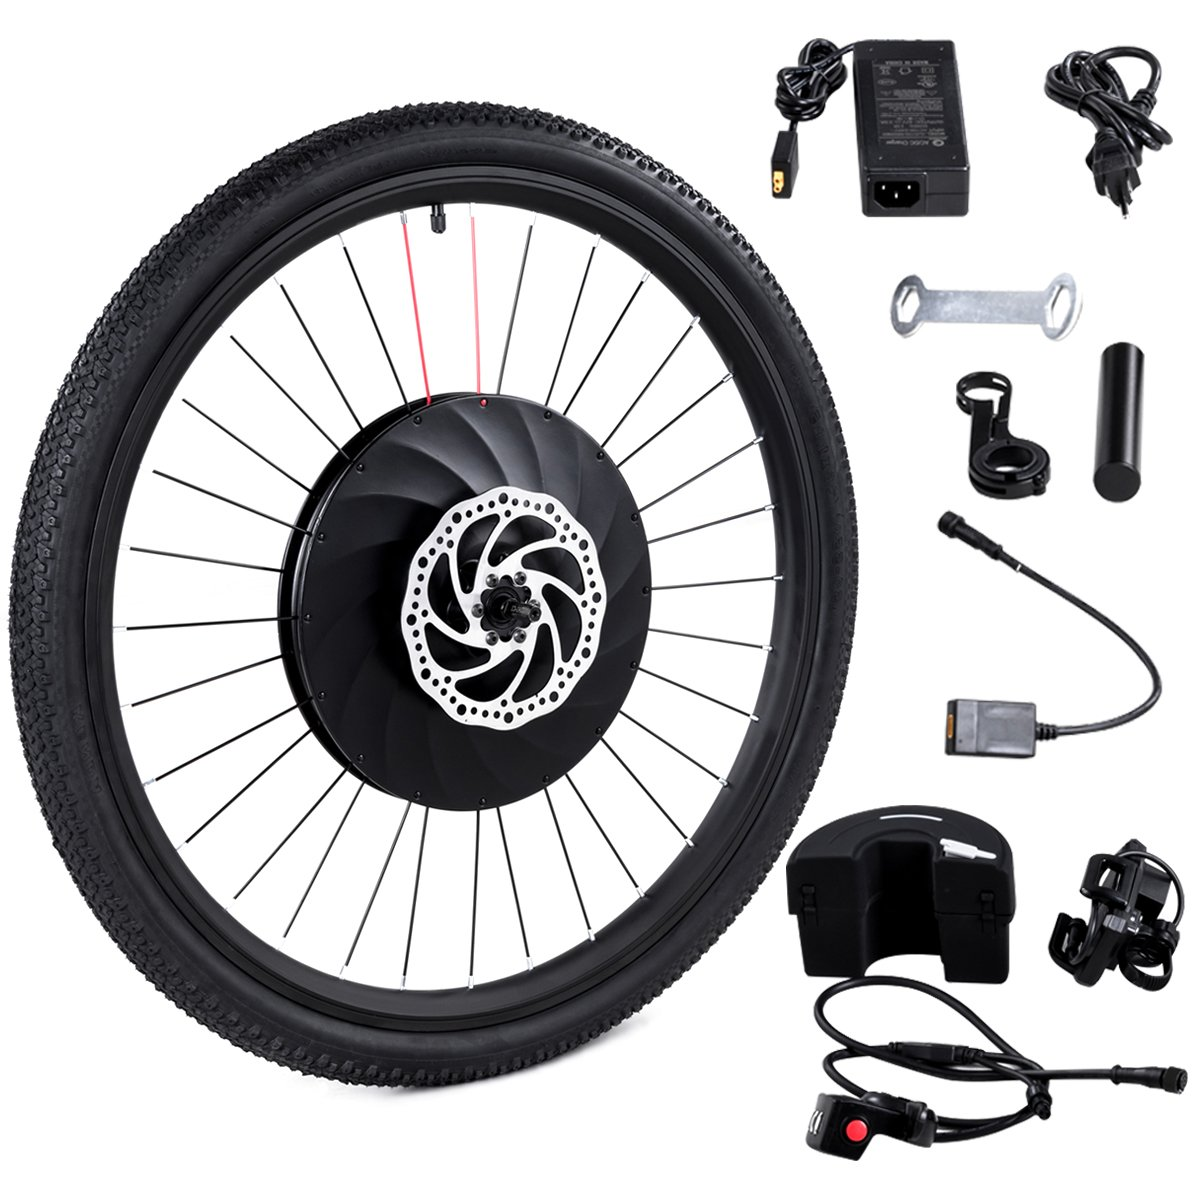 Goplus 26'' Front Wheel E-Bike Conversion Kit Electric Bicycle Motor Kit Bicycle Accessories Set with APP Interaction, Battery and USB Charger, 36V 240W